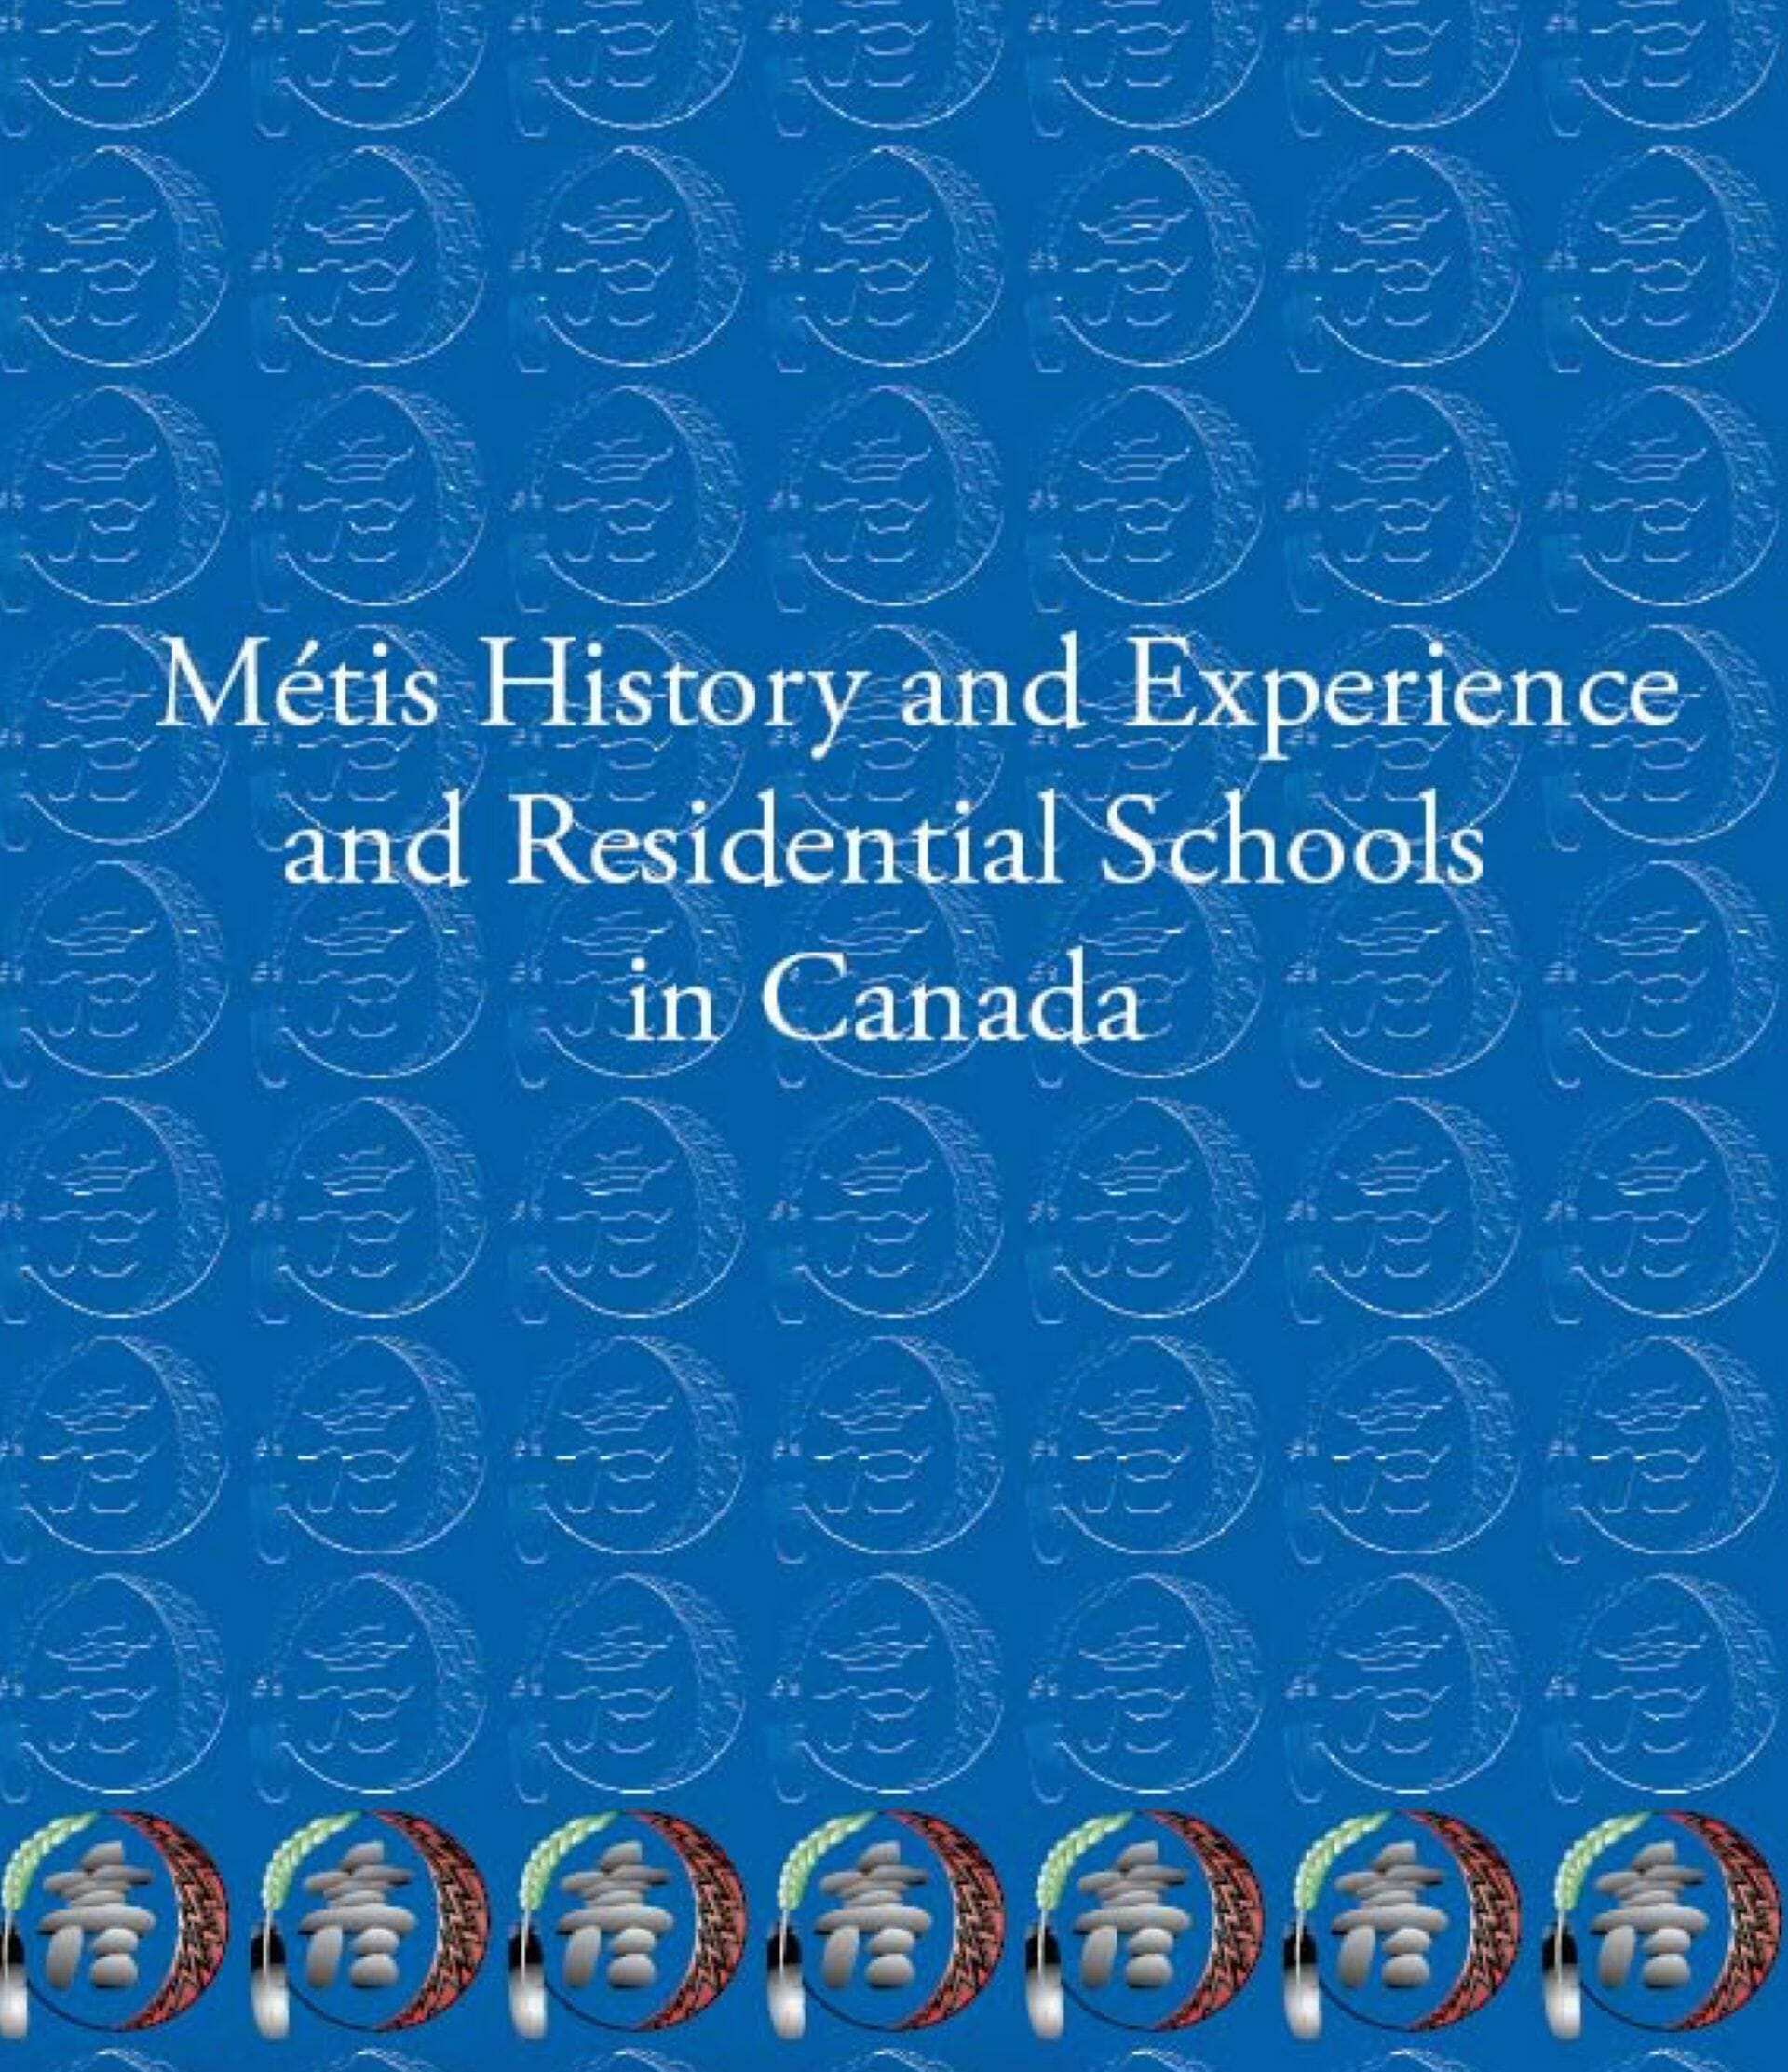 Métis History and Experience and Residential Schools in Canada